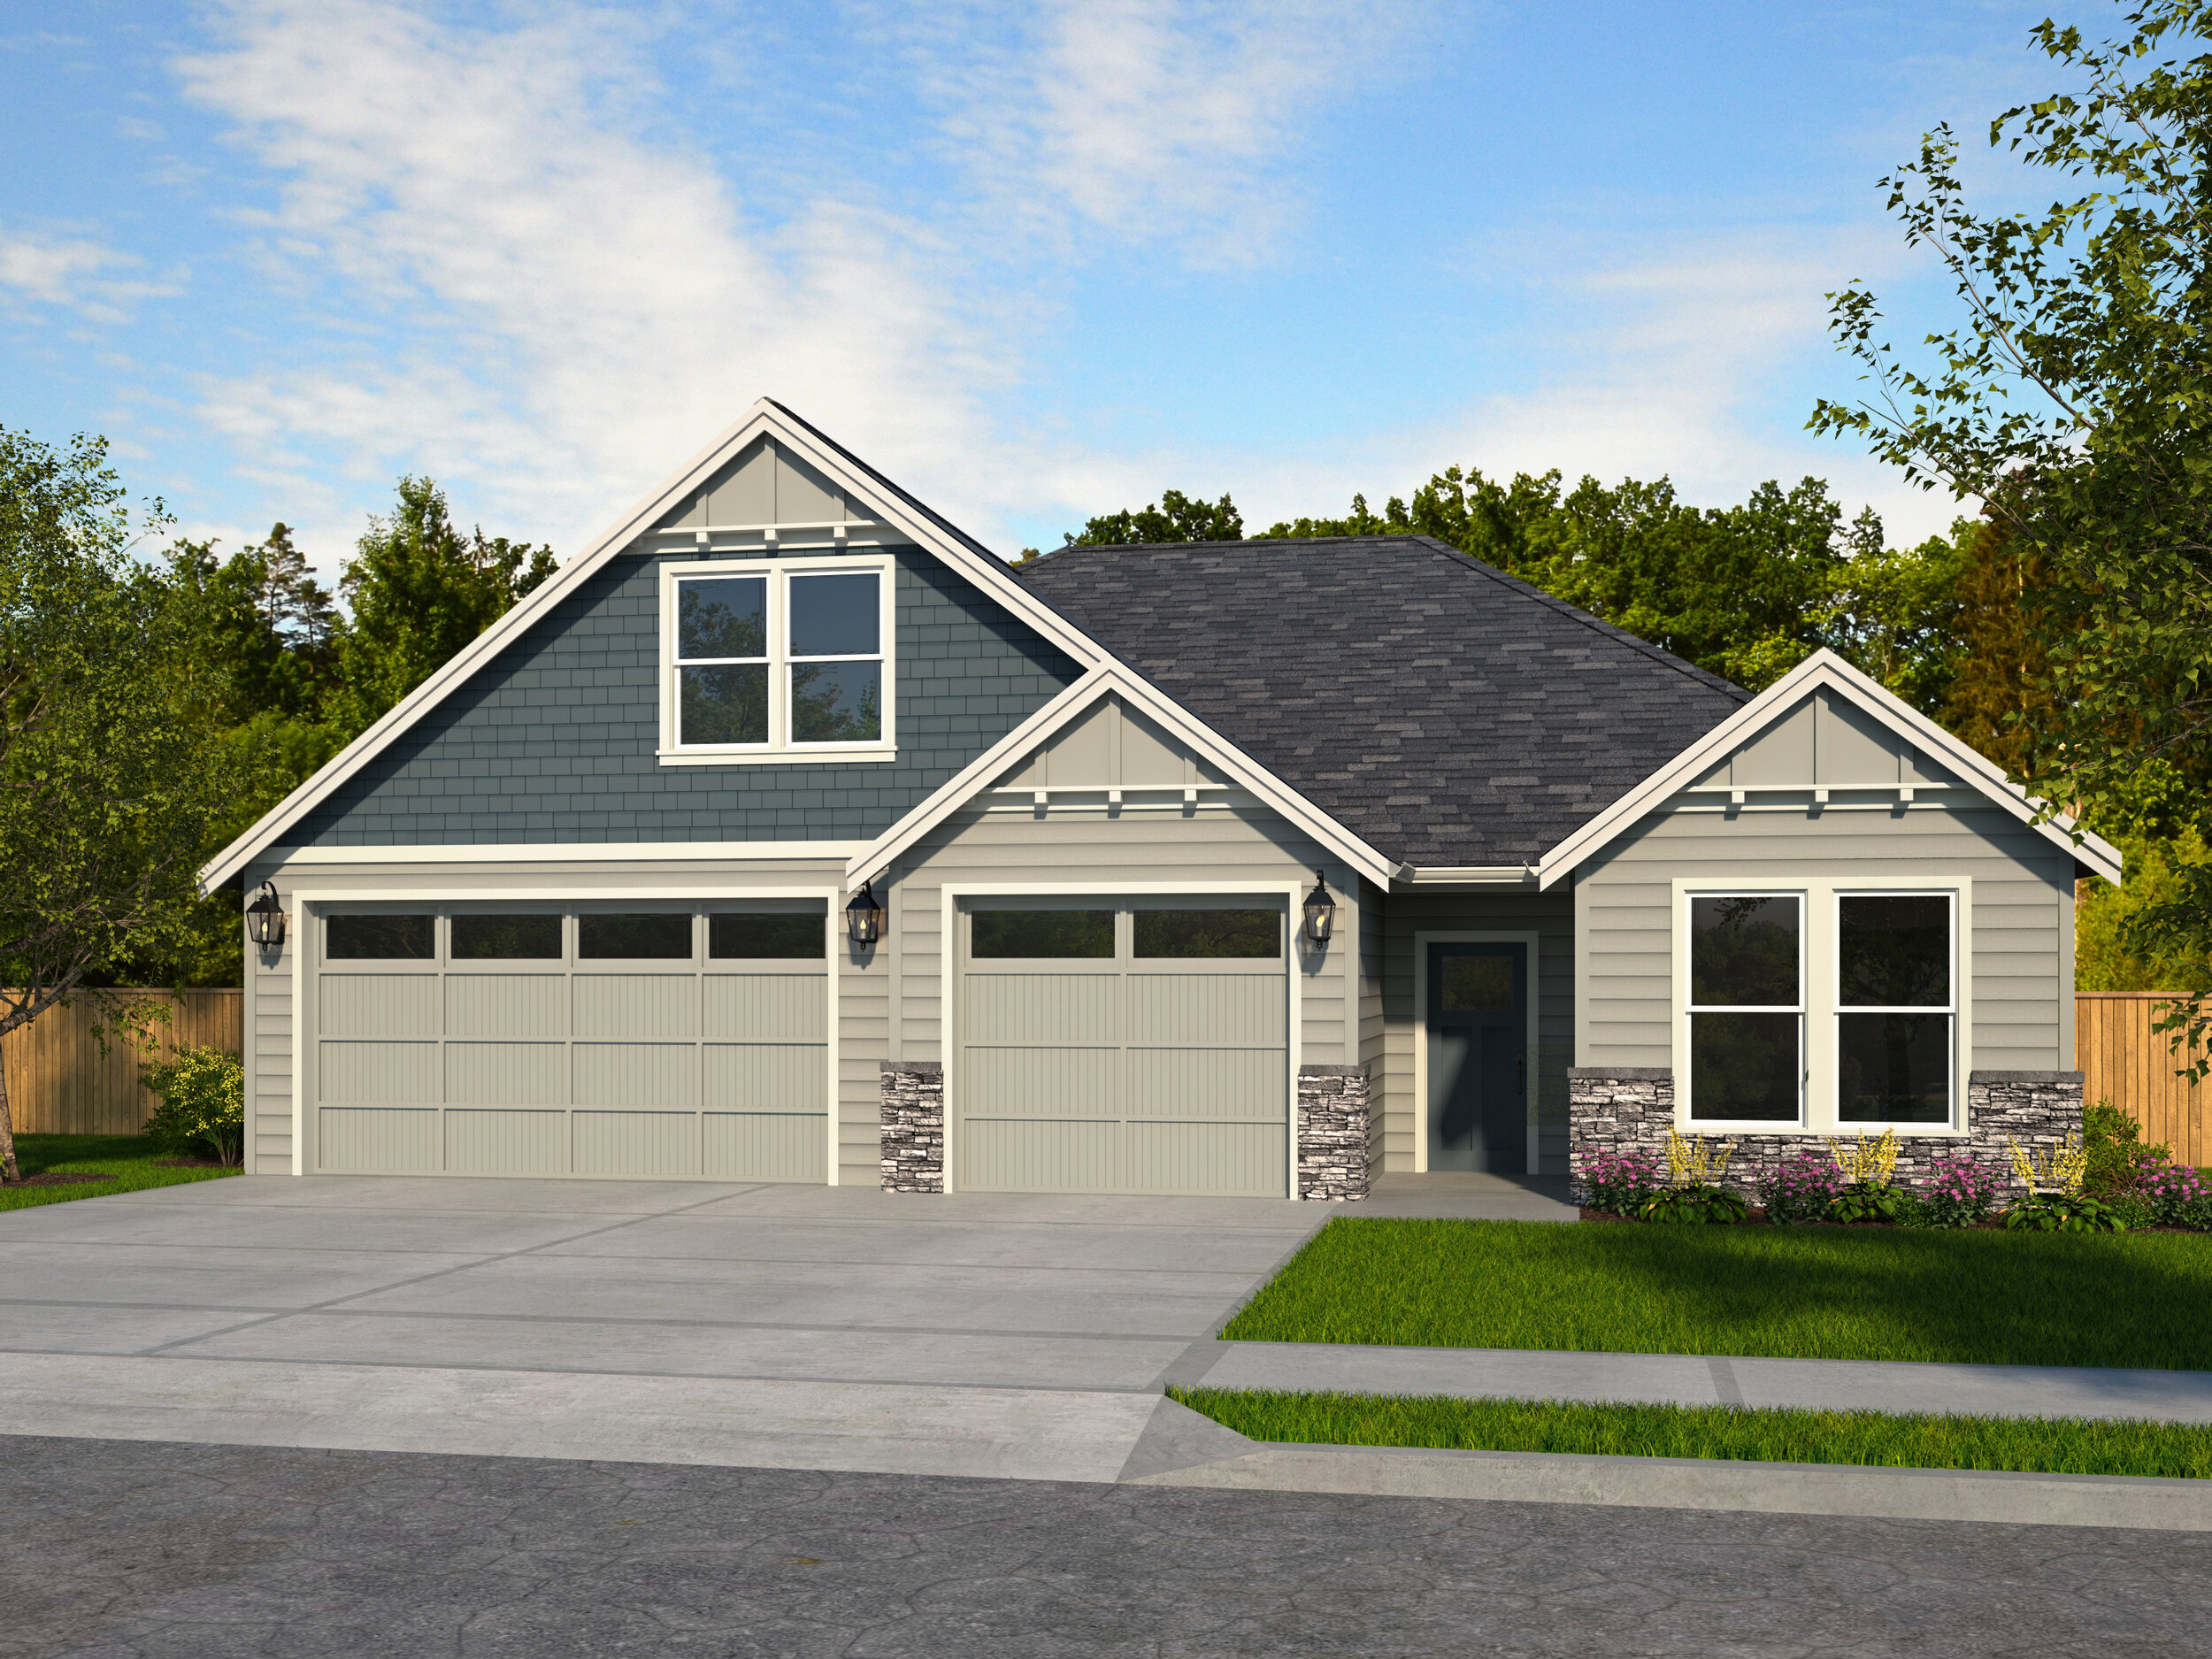 The 2425 A Elevation with 3 Car Garage